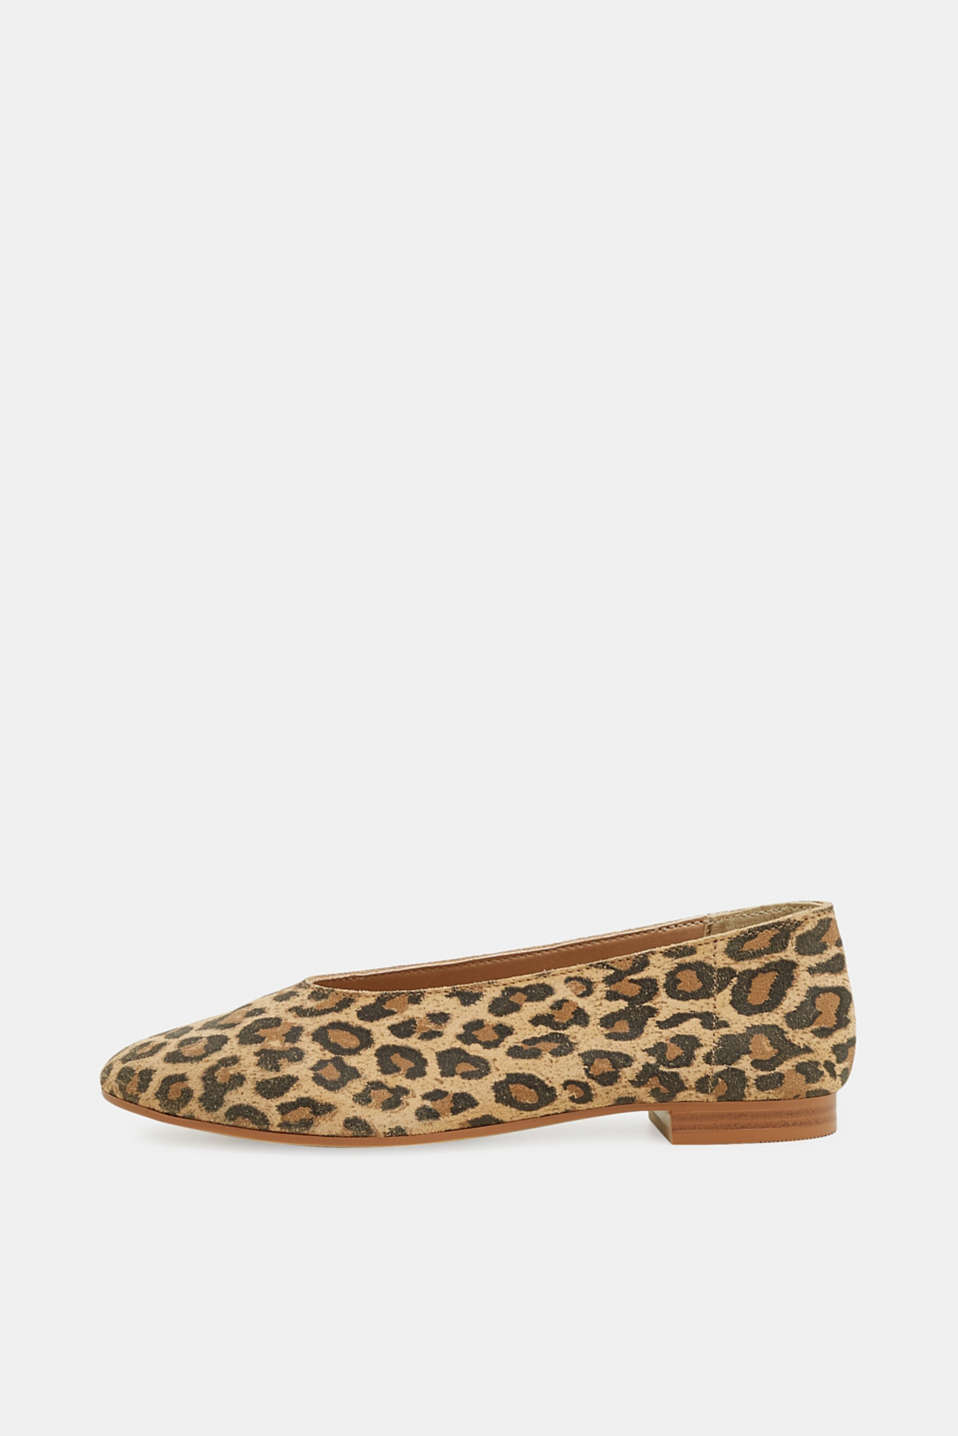 Esprit - Leopard ballerinas in leather